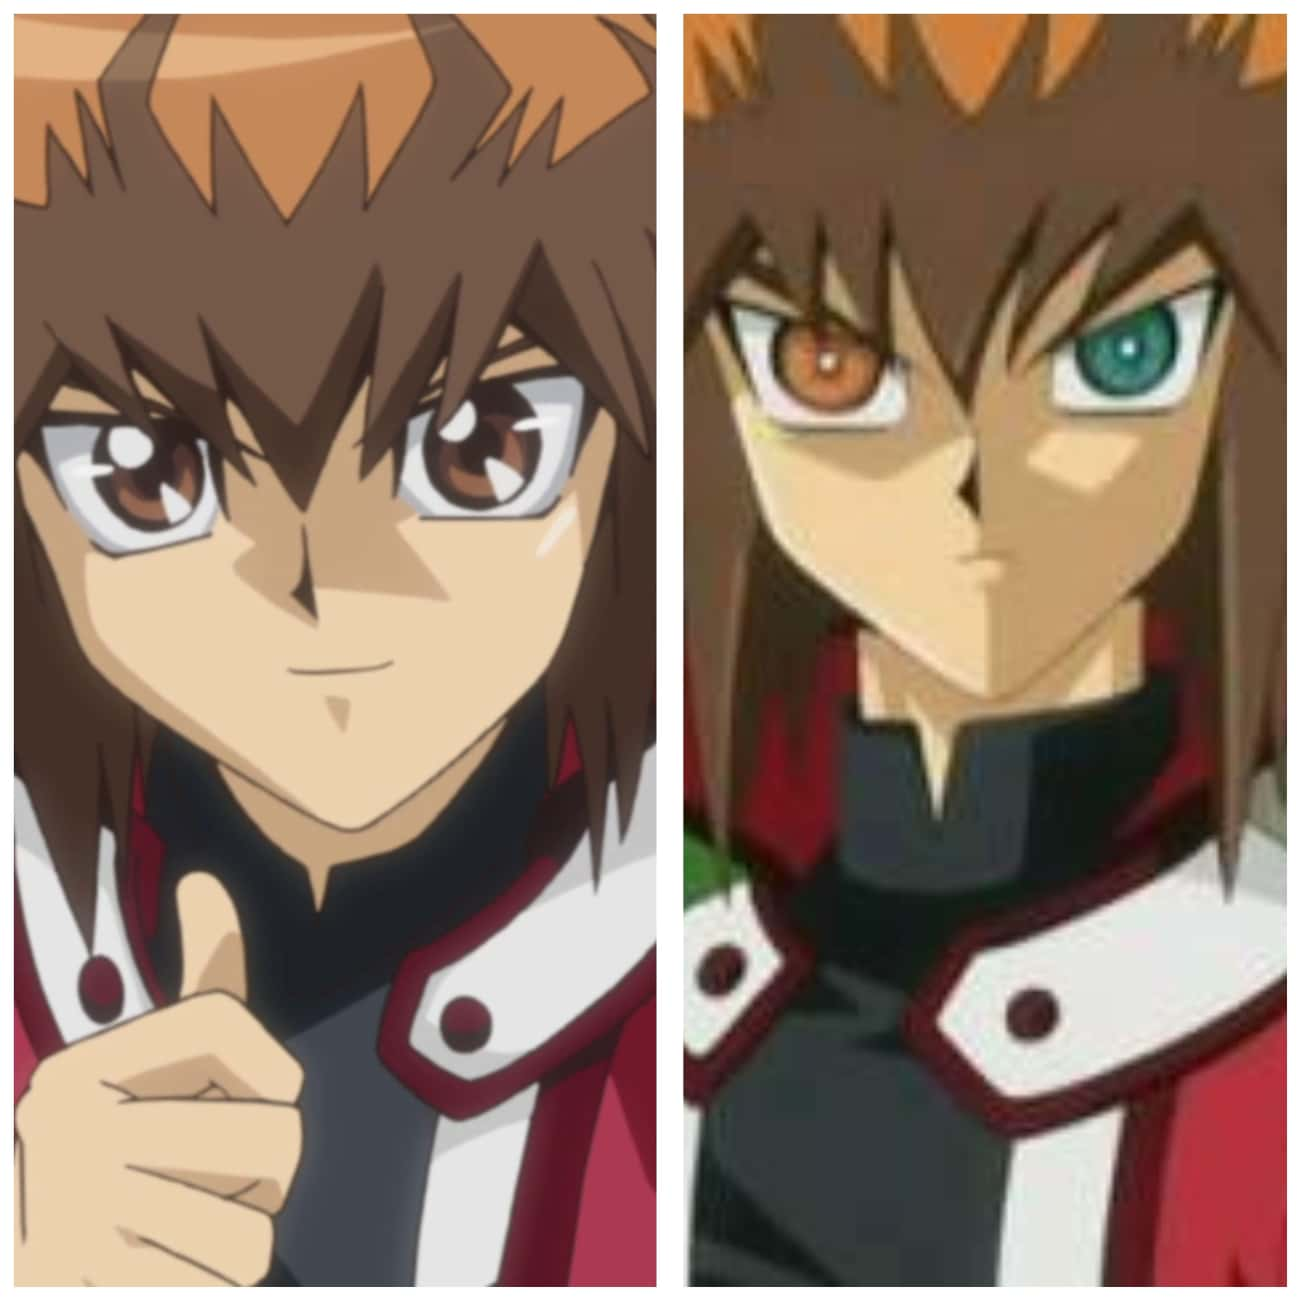 Jaden Yuki Turns Evil And Ceases To Exist In 'Yu-Gi-Oh! GX'